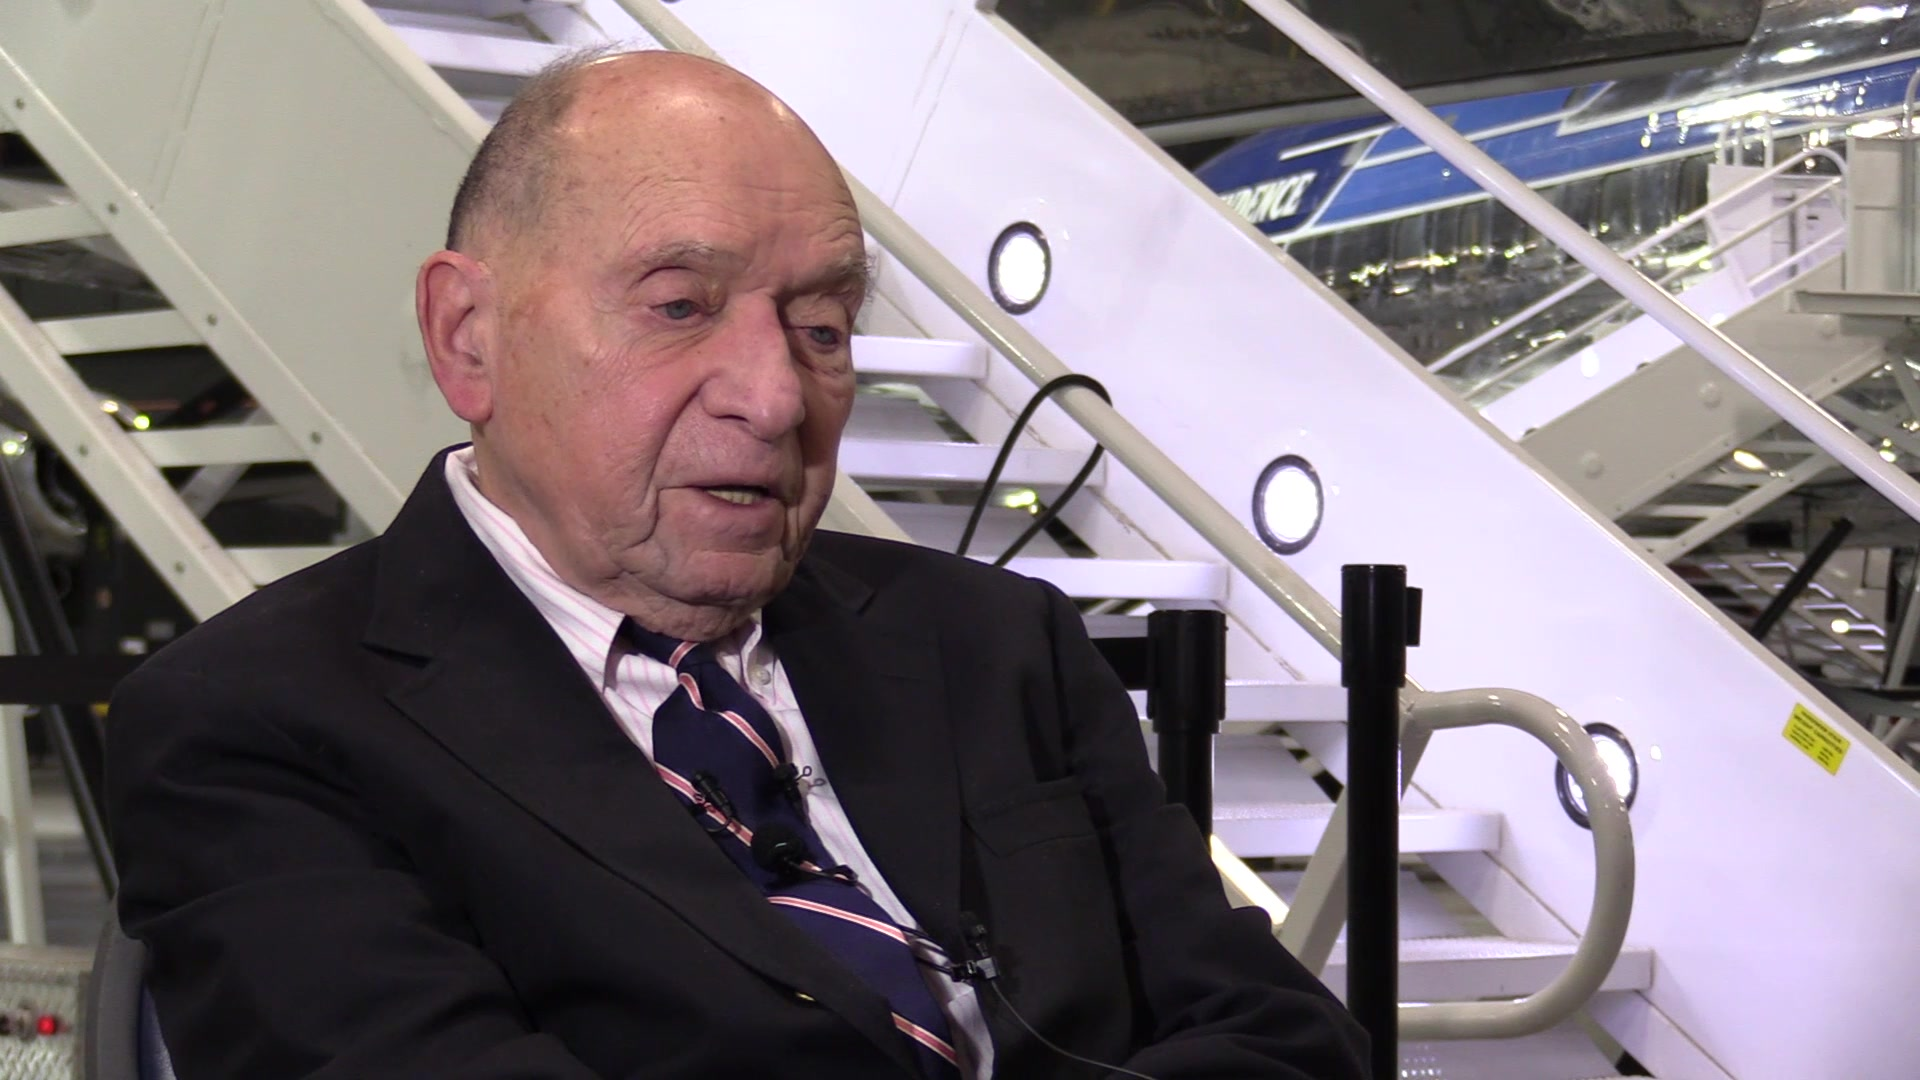 Here's an interview with former White House pool reporter Sid Davis, who visited the museum taking a tour of SAM 26000, the Presidential aircraft that carried John F. Kennedy's body from Dallas to Washington D.C. on Nov. 22, 1963. Visitors can view this aircraft in the museum's Presidential Gallery.